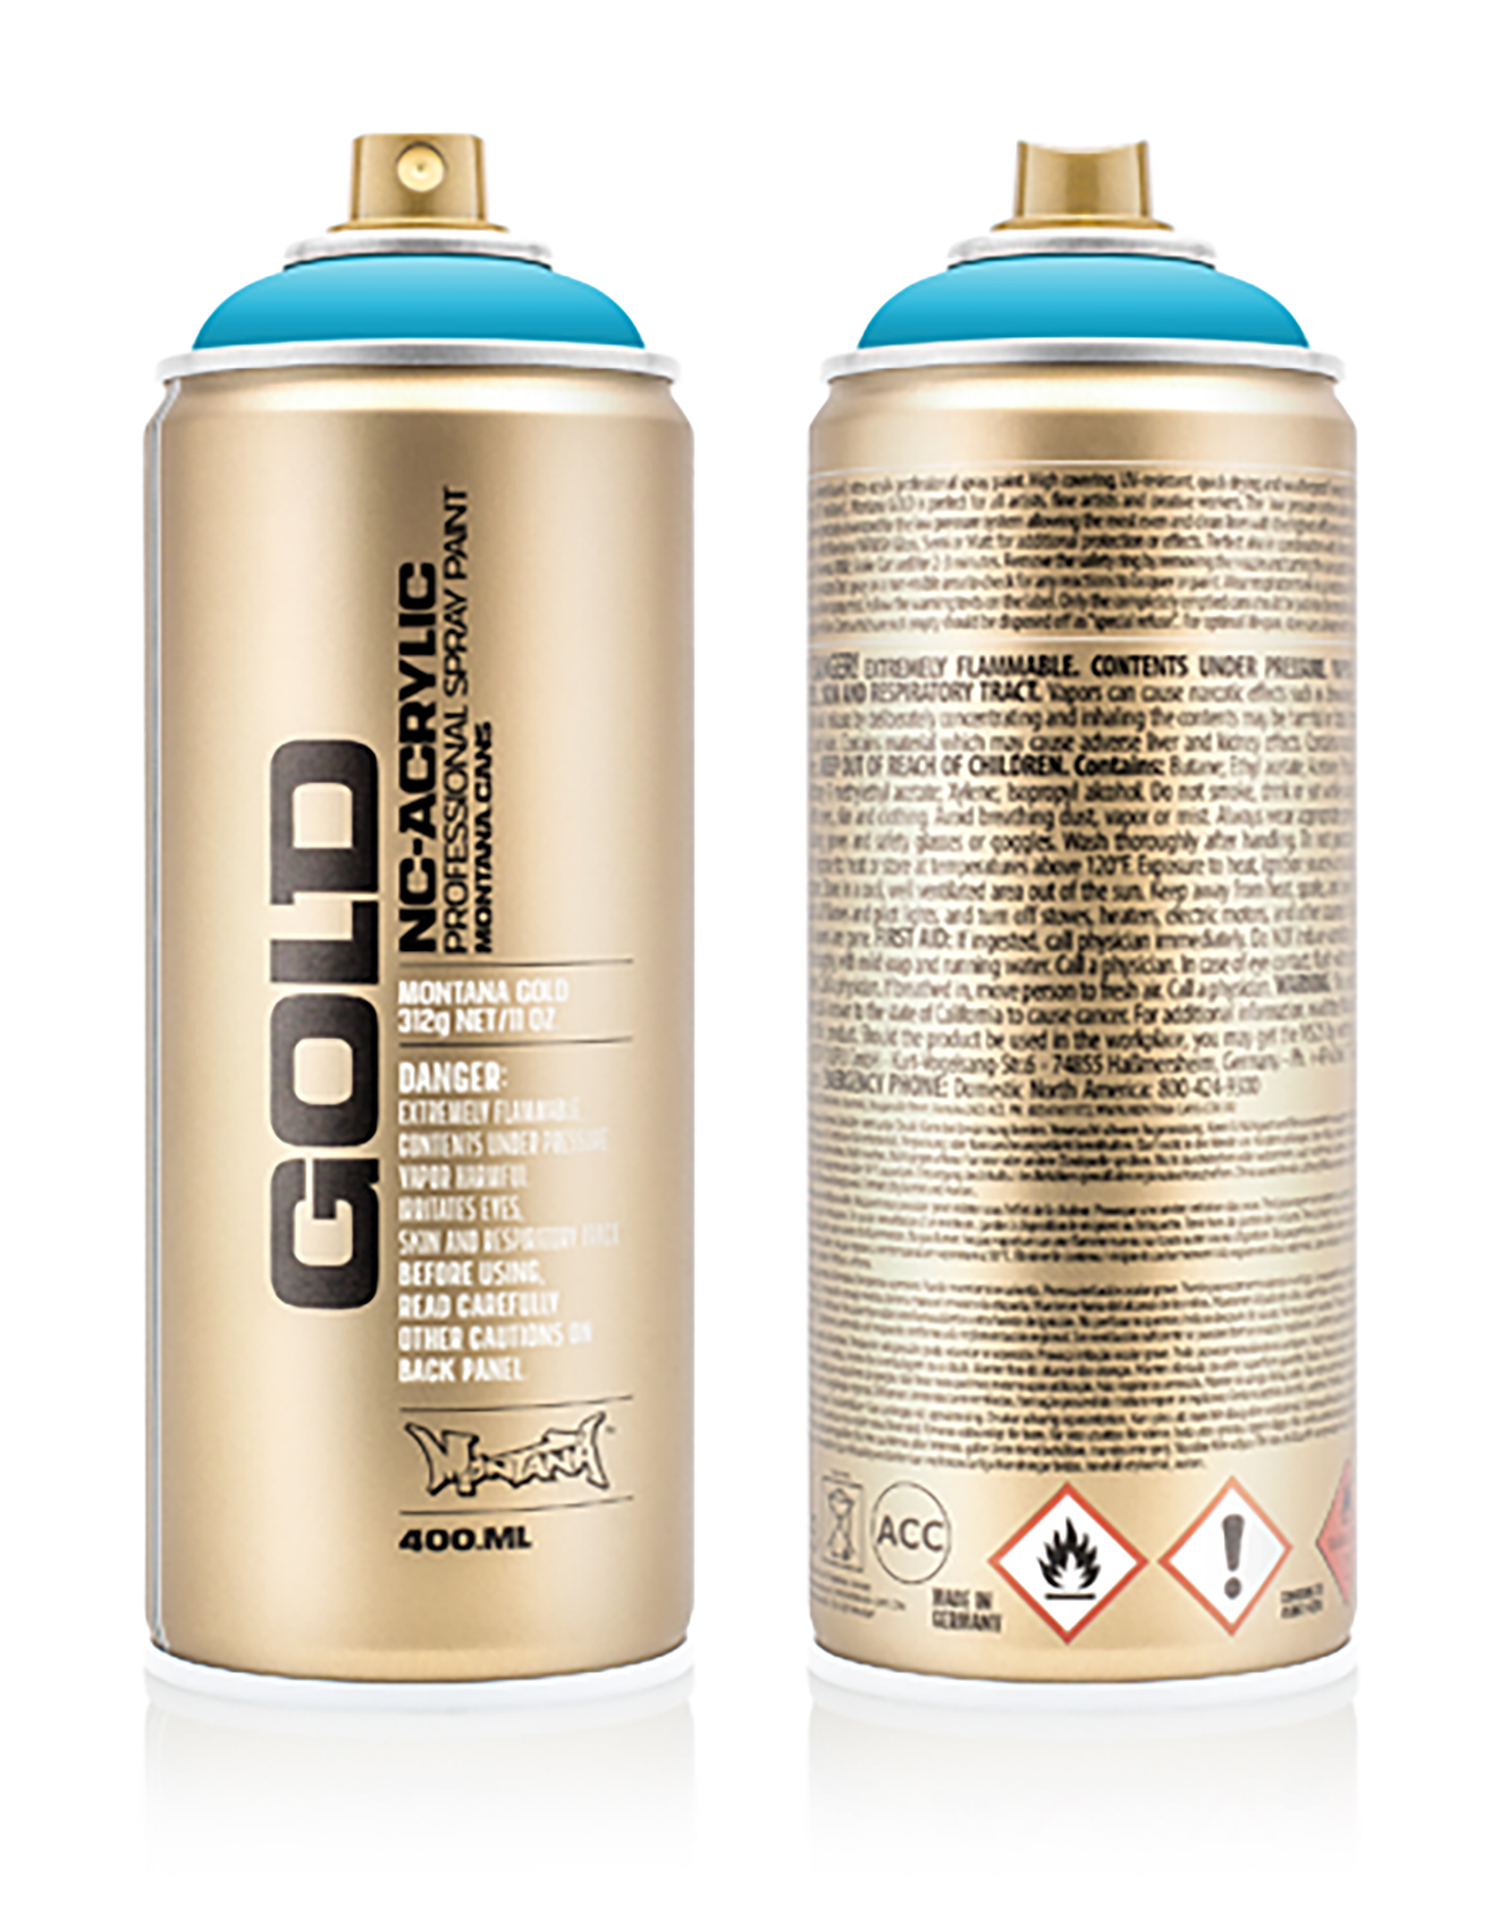 MONTANA-GOLD-SPRAY-400ML-G-5030